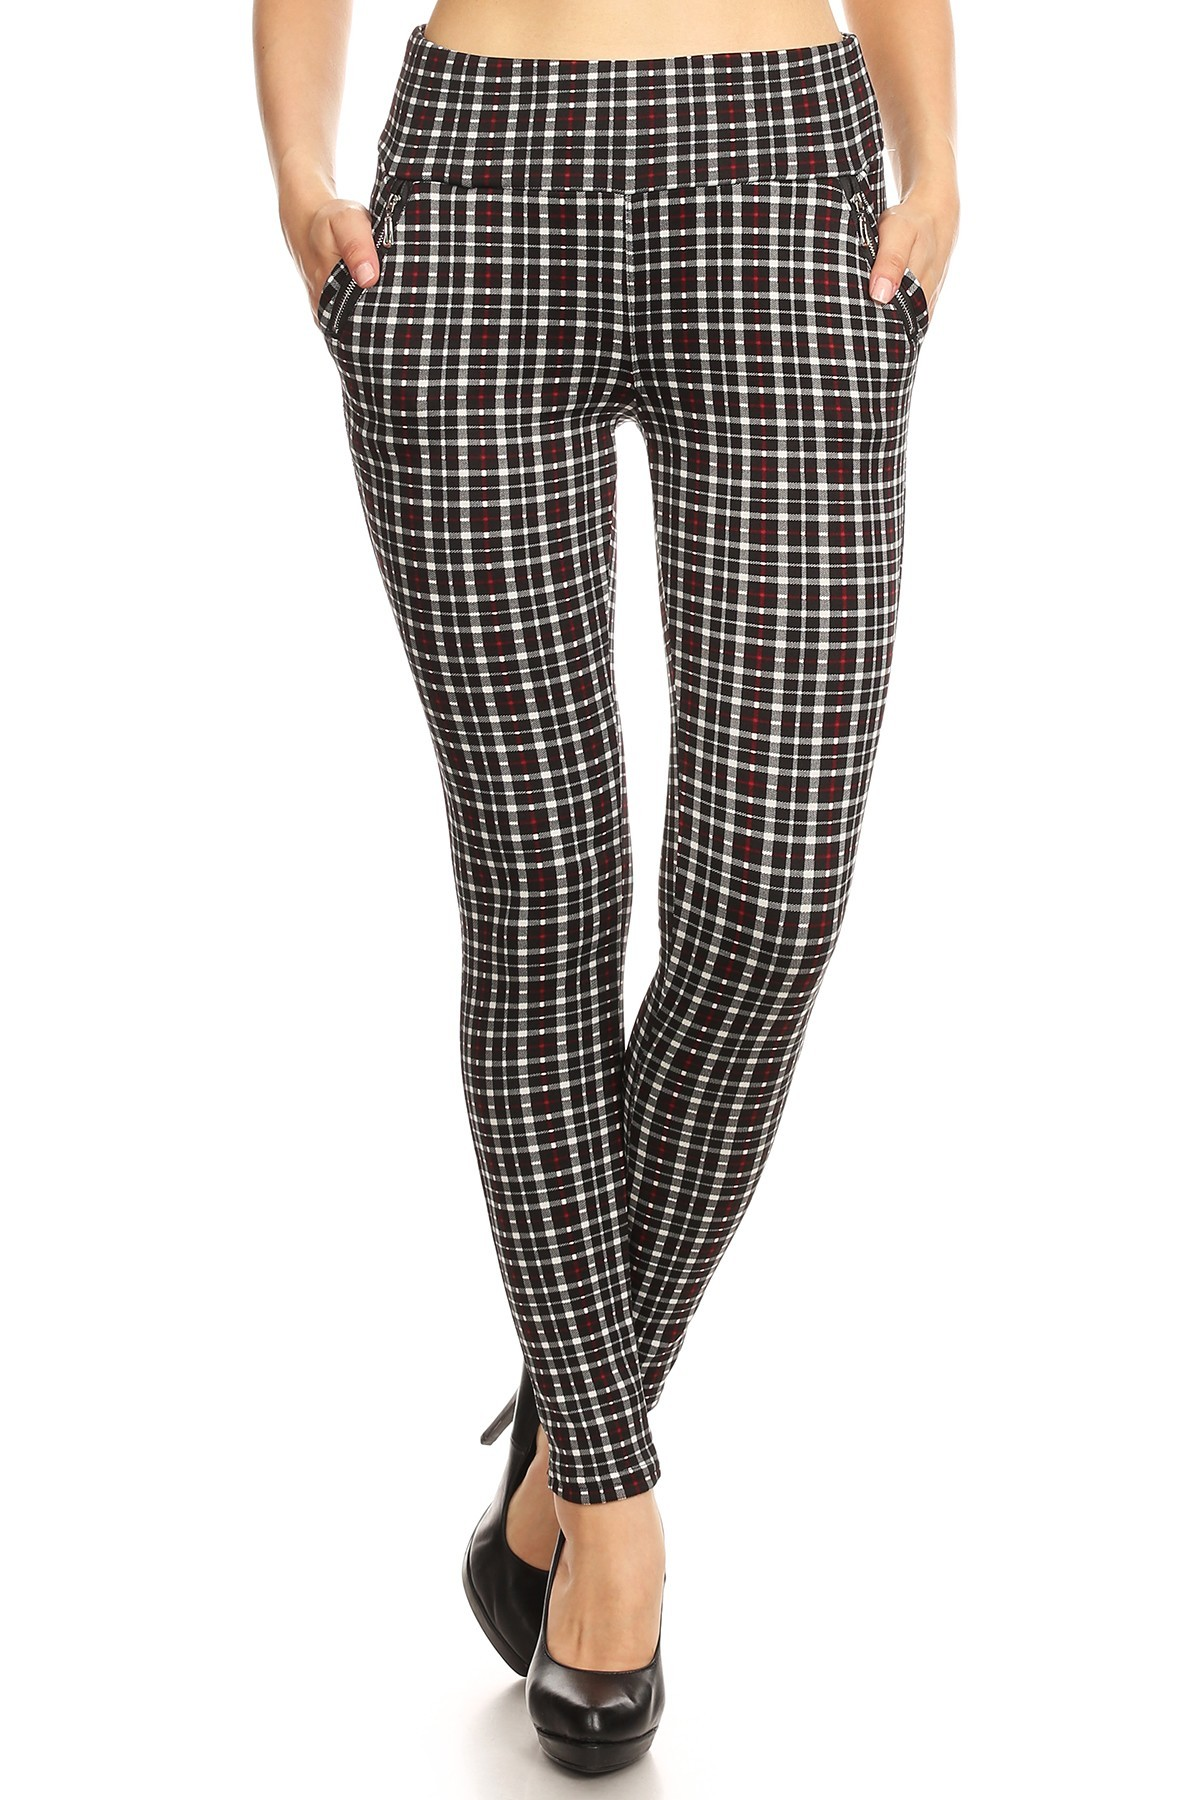 BLACK/WHITE/RED PLAID PRINT TREGGING WITH ZIPPER DETAIL#8TRG03-12